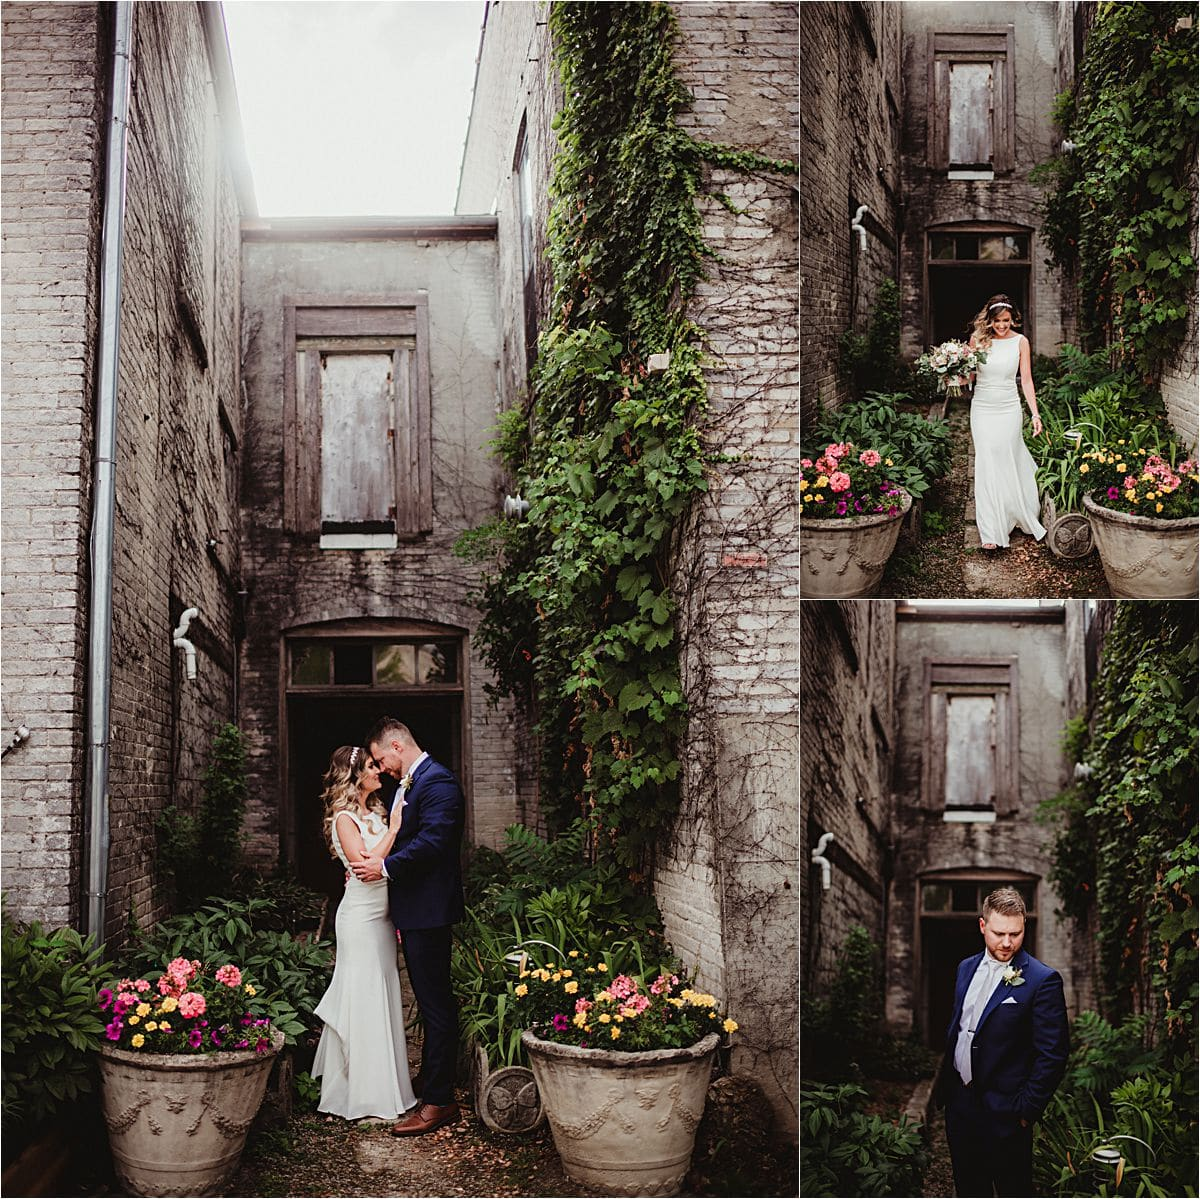 Bride and Groom in Stone Alley